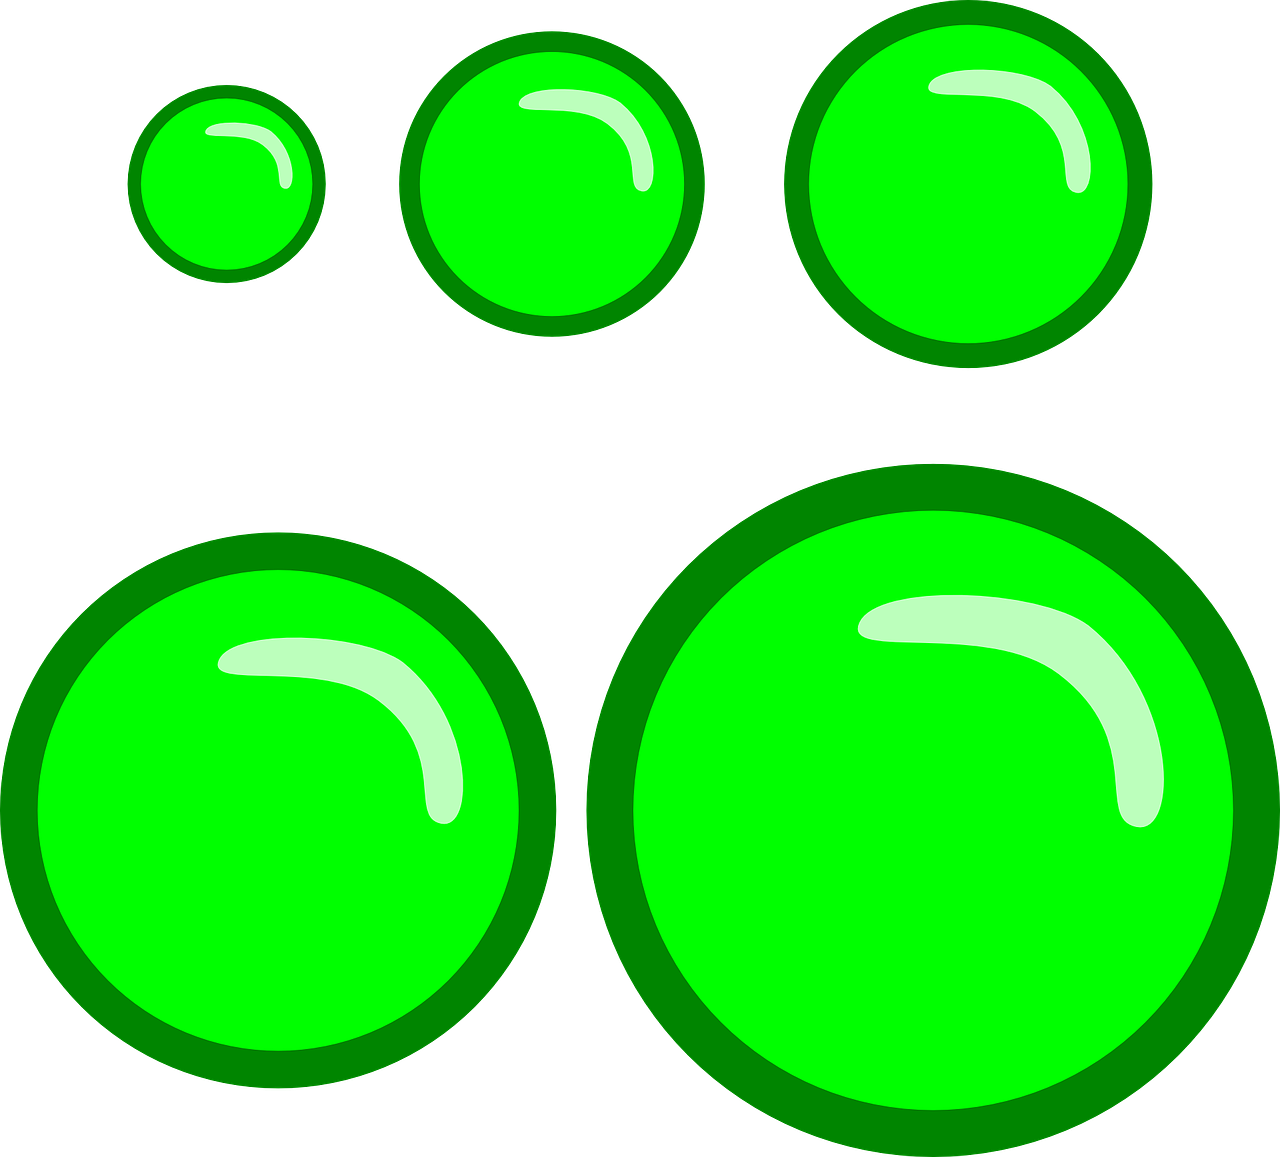 buttons green circle free photo